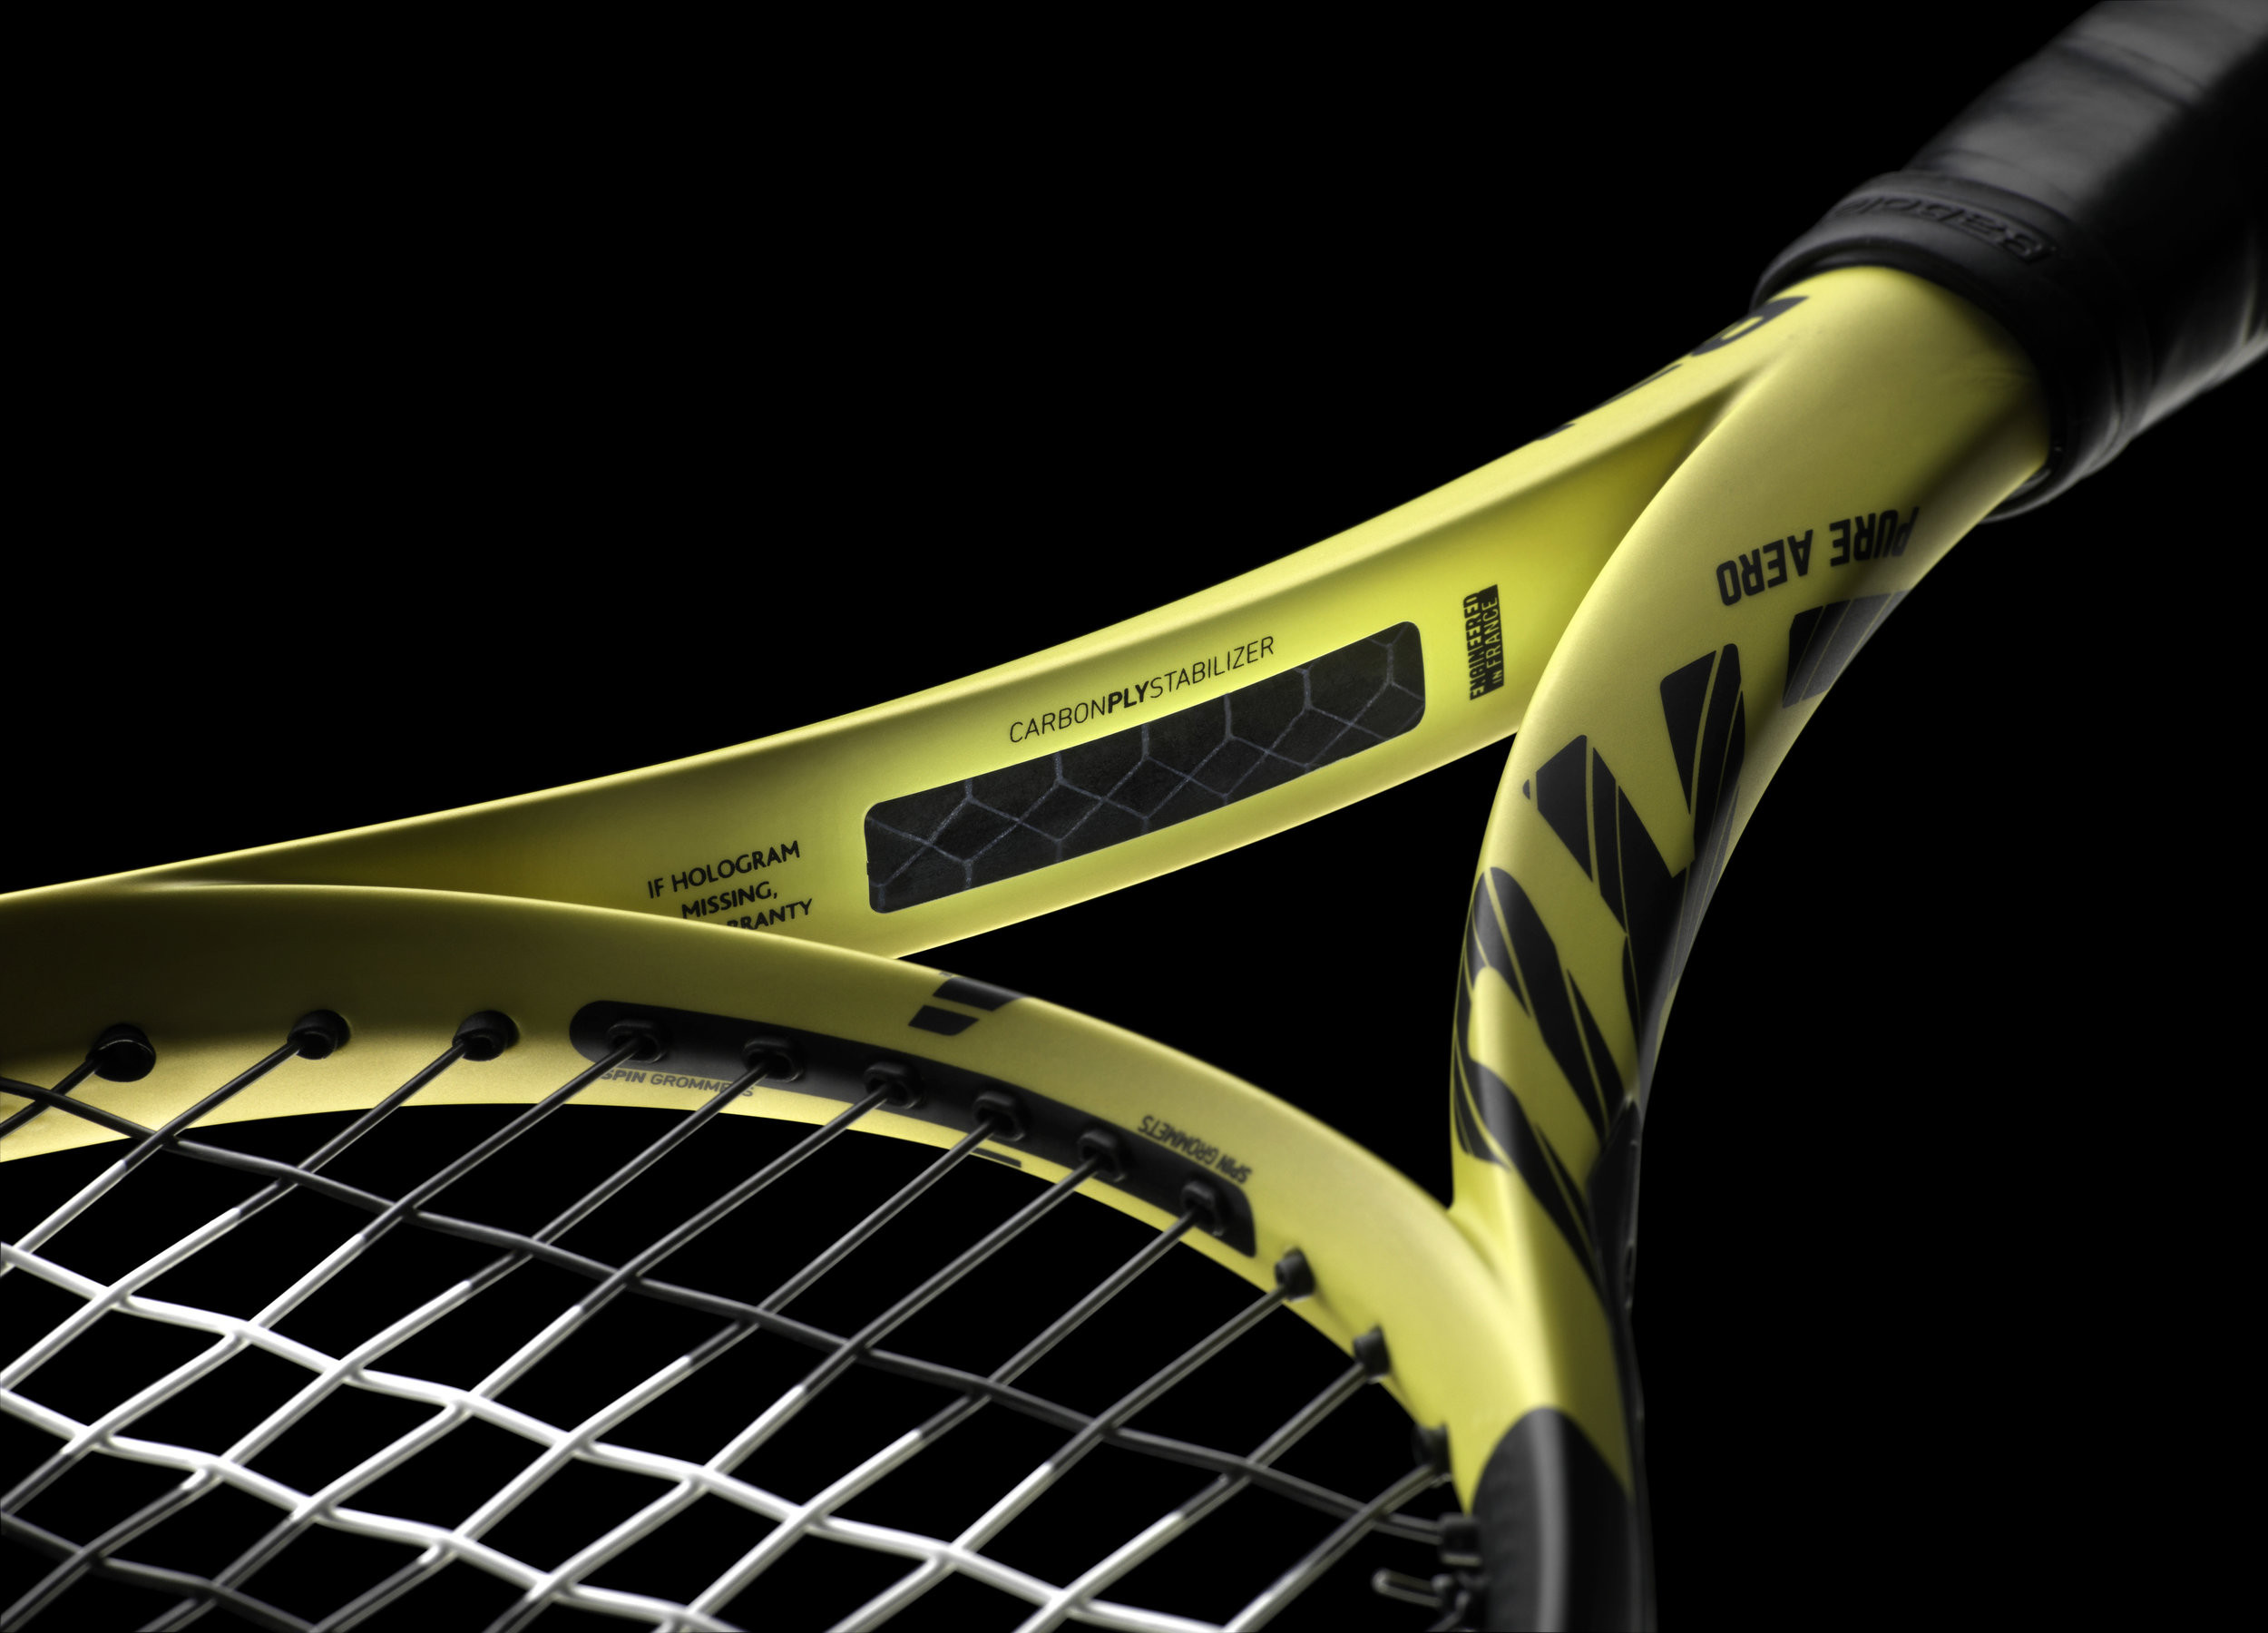 SHOP BABOLAT   Including the Pure Aero, Pure Drive, Pure Strike range and more!